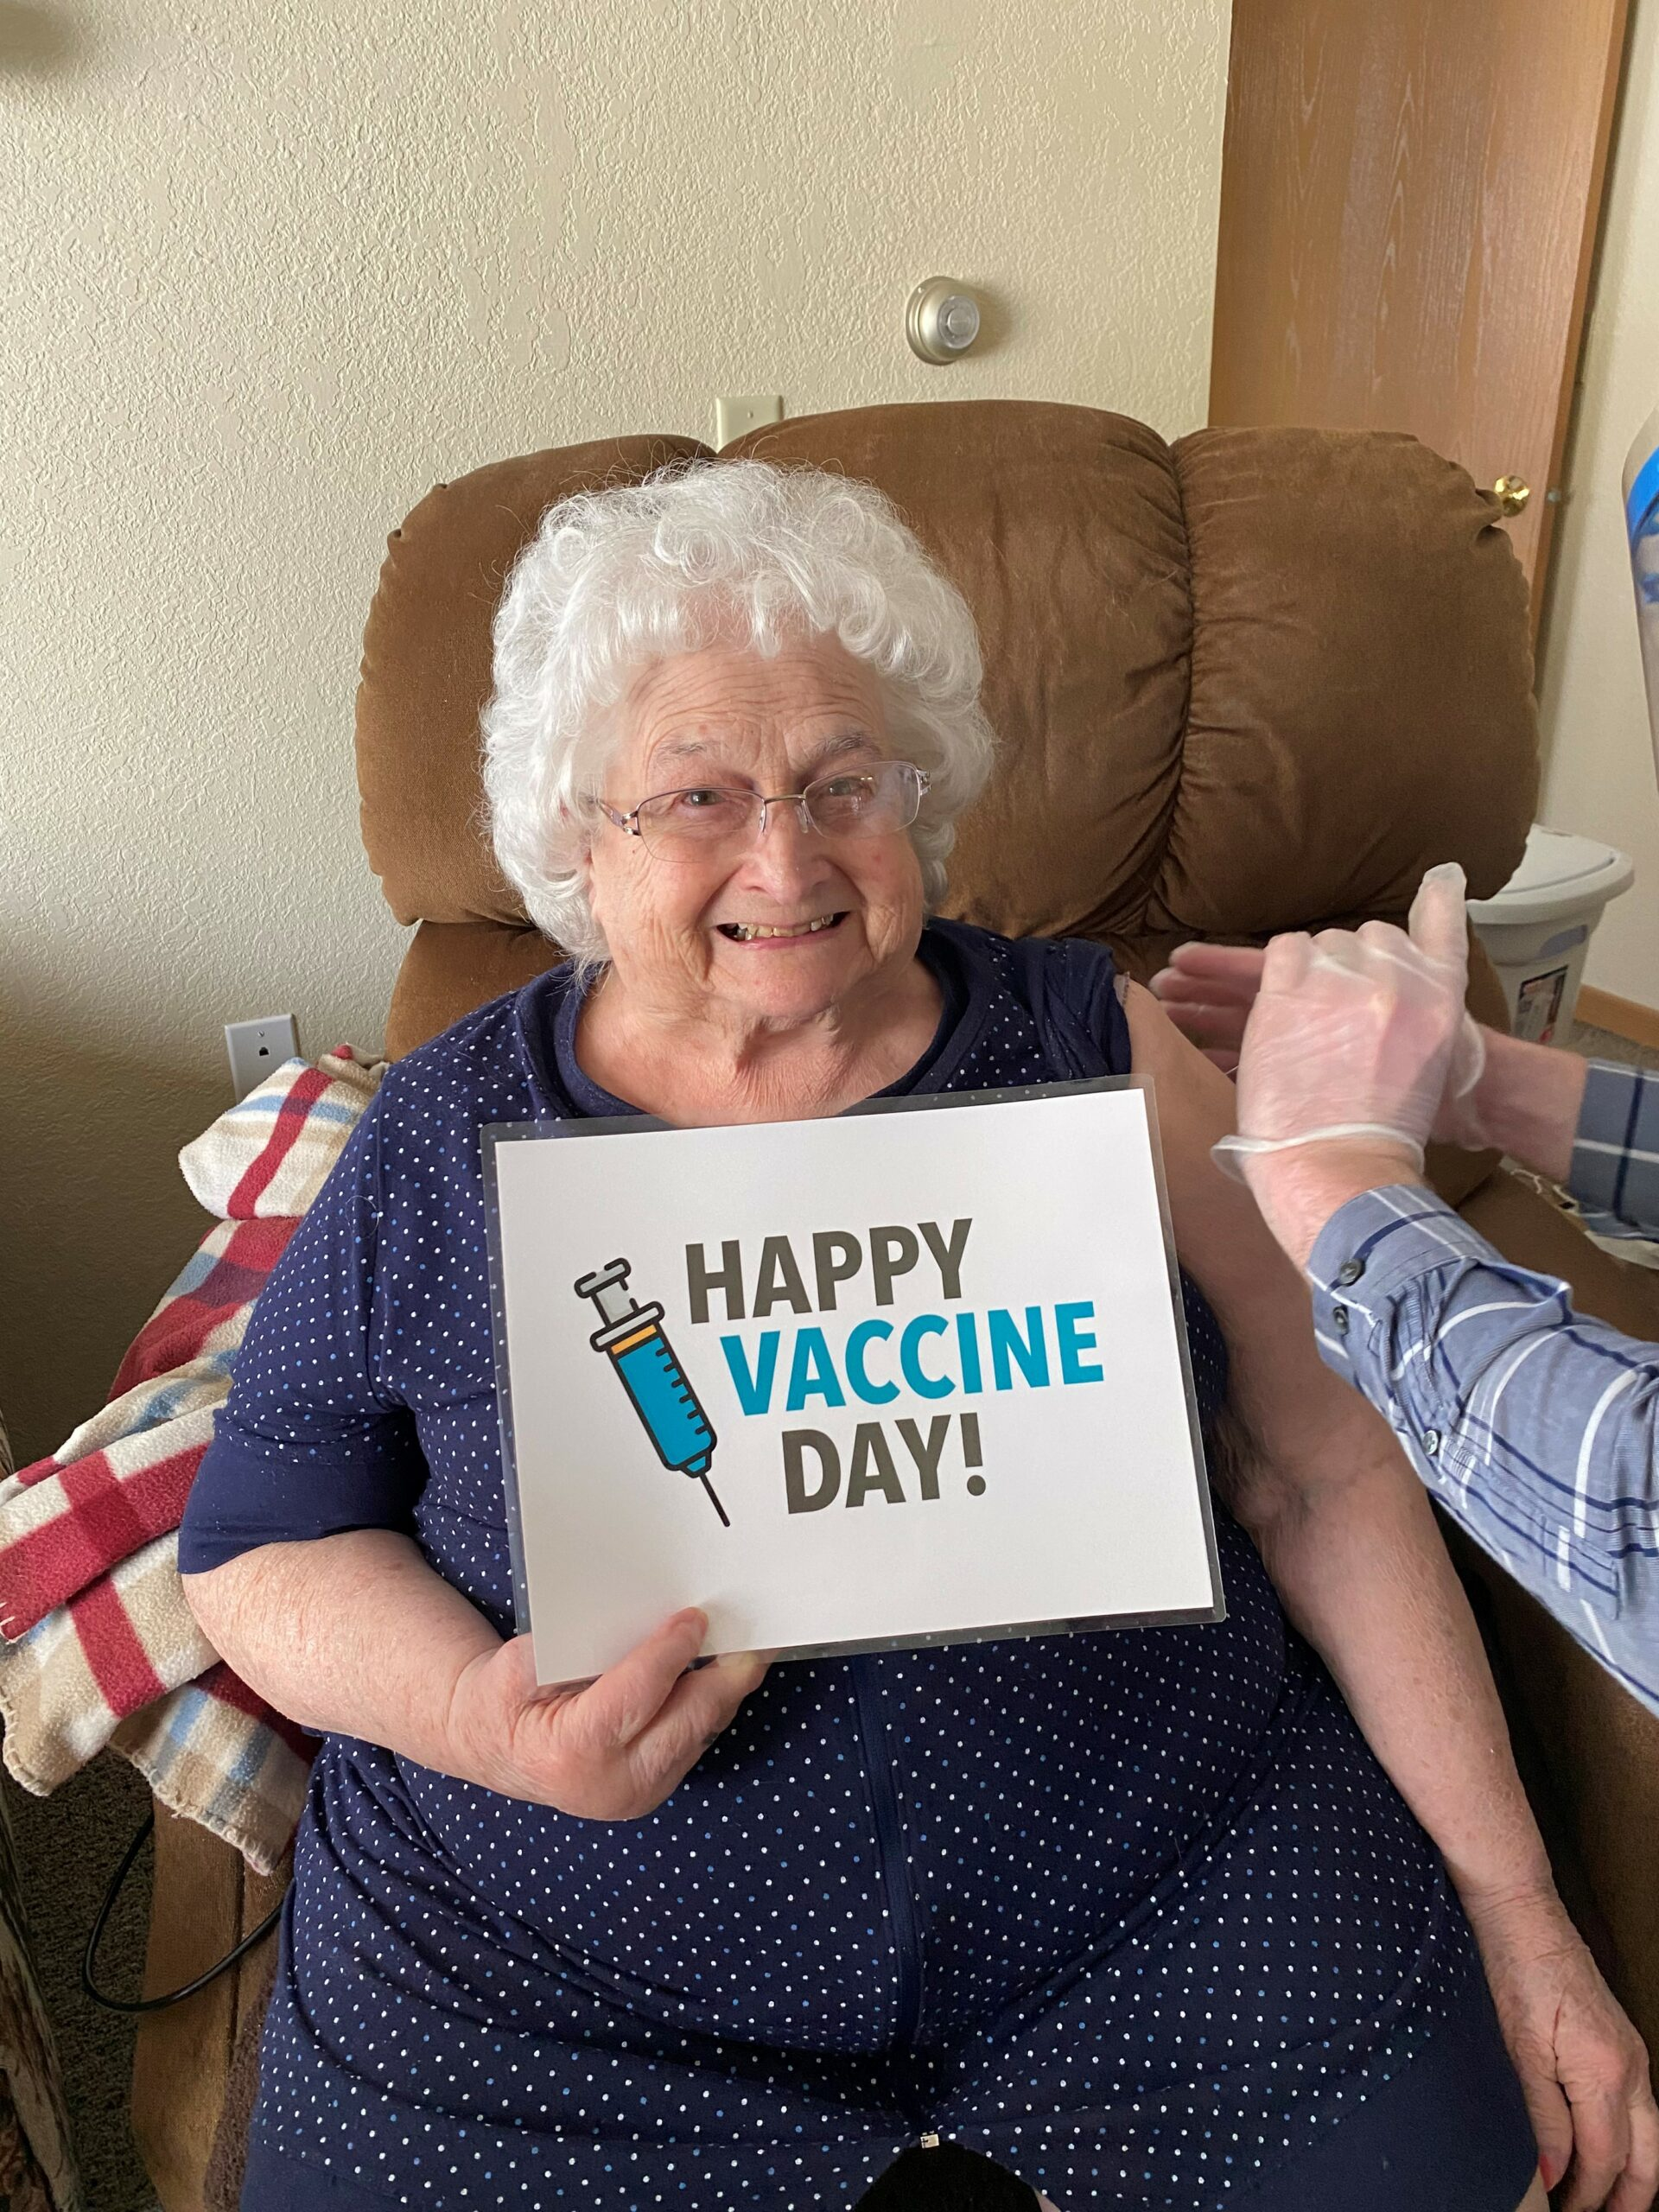 Happy Vaccination Day! Jane was excited to get her vaccine today!